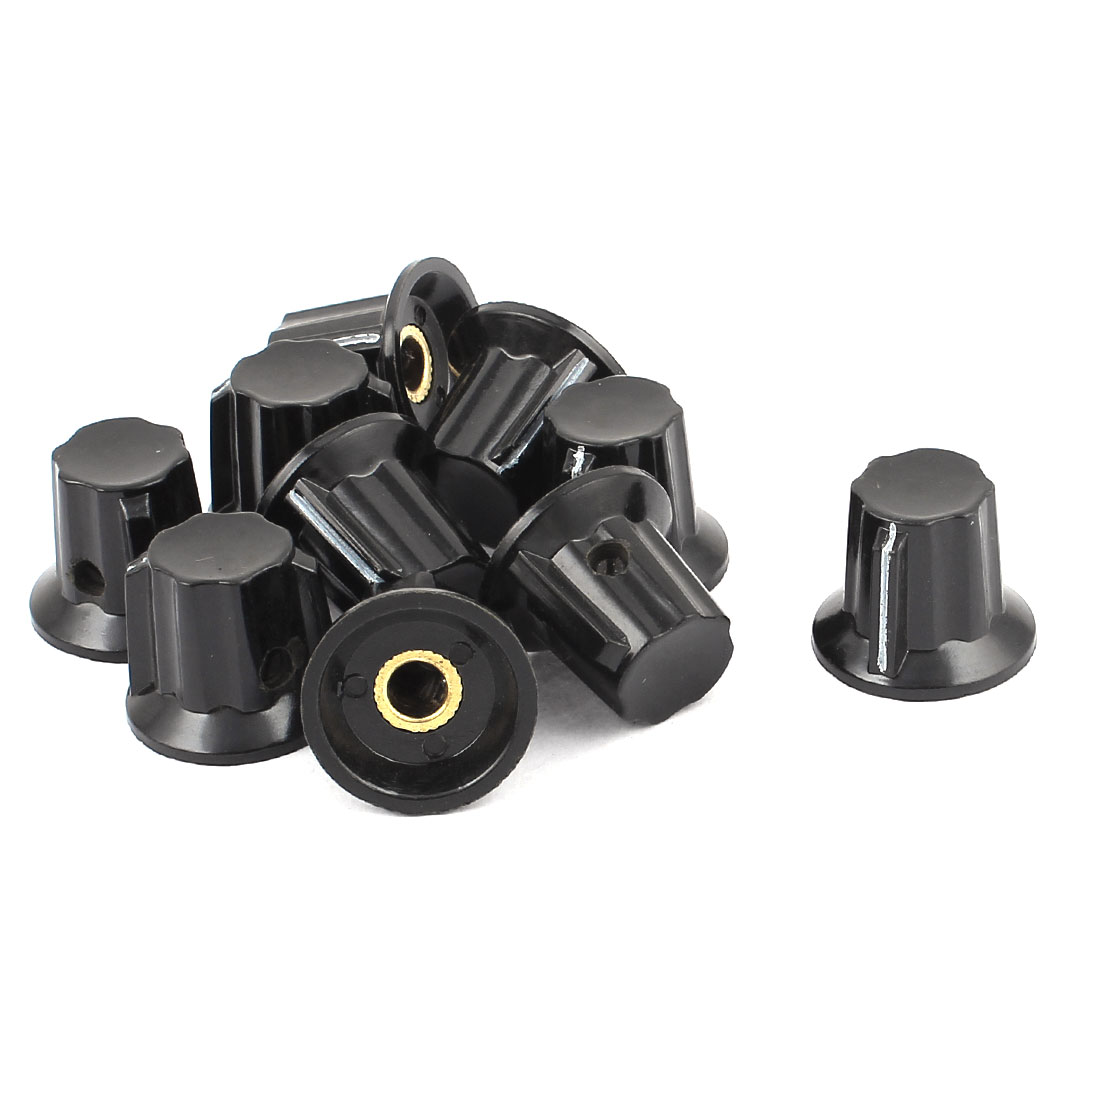 10pcs 6mm Shaft Insert Dia Black Potentiometer Volume Control Knobs Caps